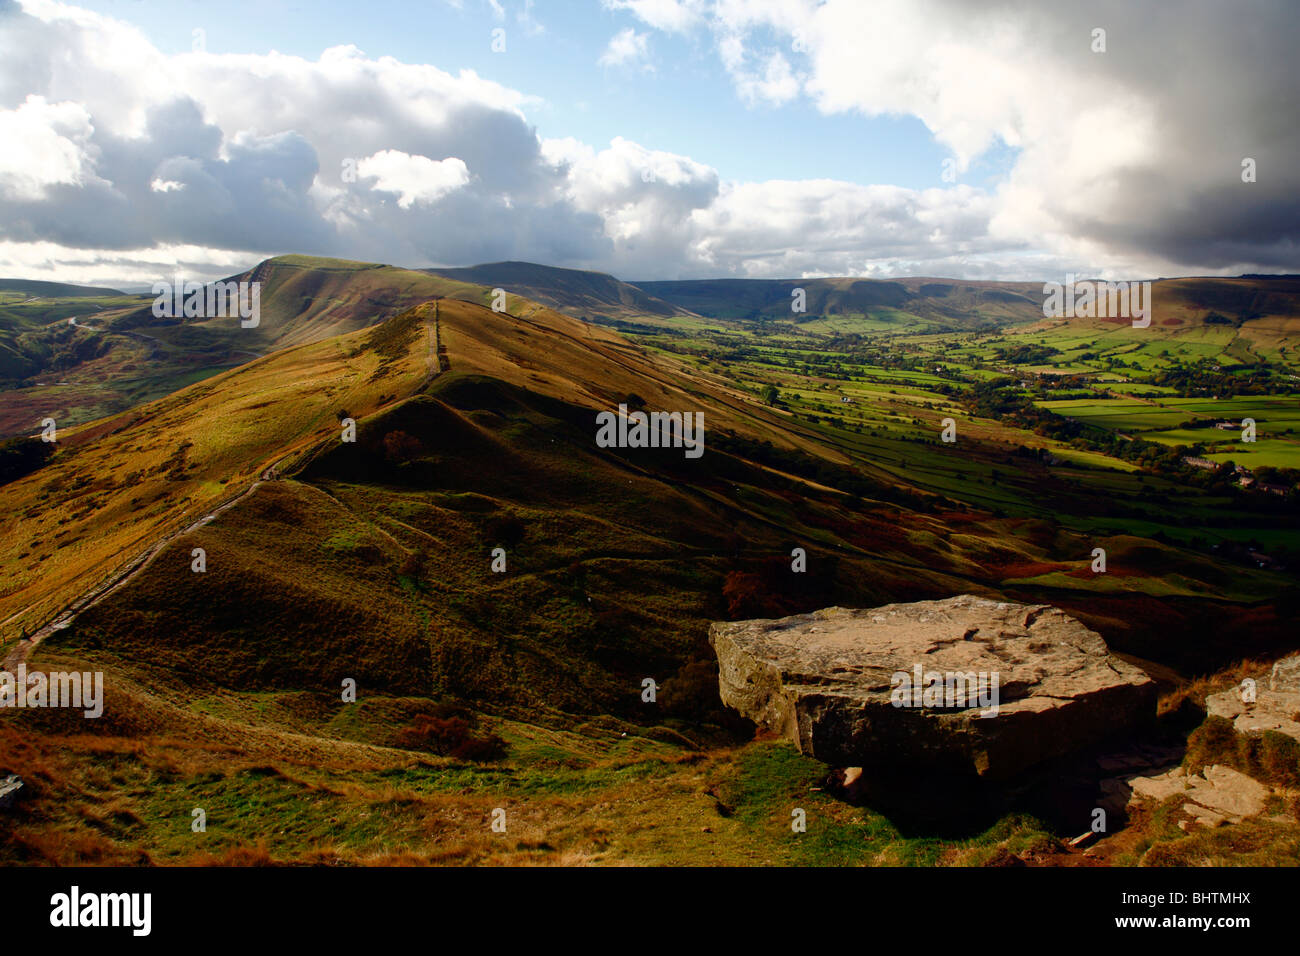 Hollins Cross, Mam Tor and Edale from Backtor,Peak District National Park,Derbyshire,England,UK. - Stock Image